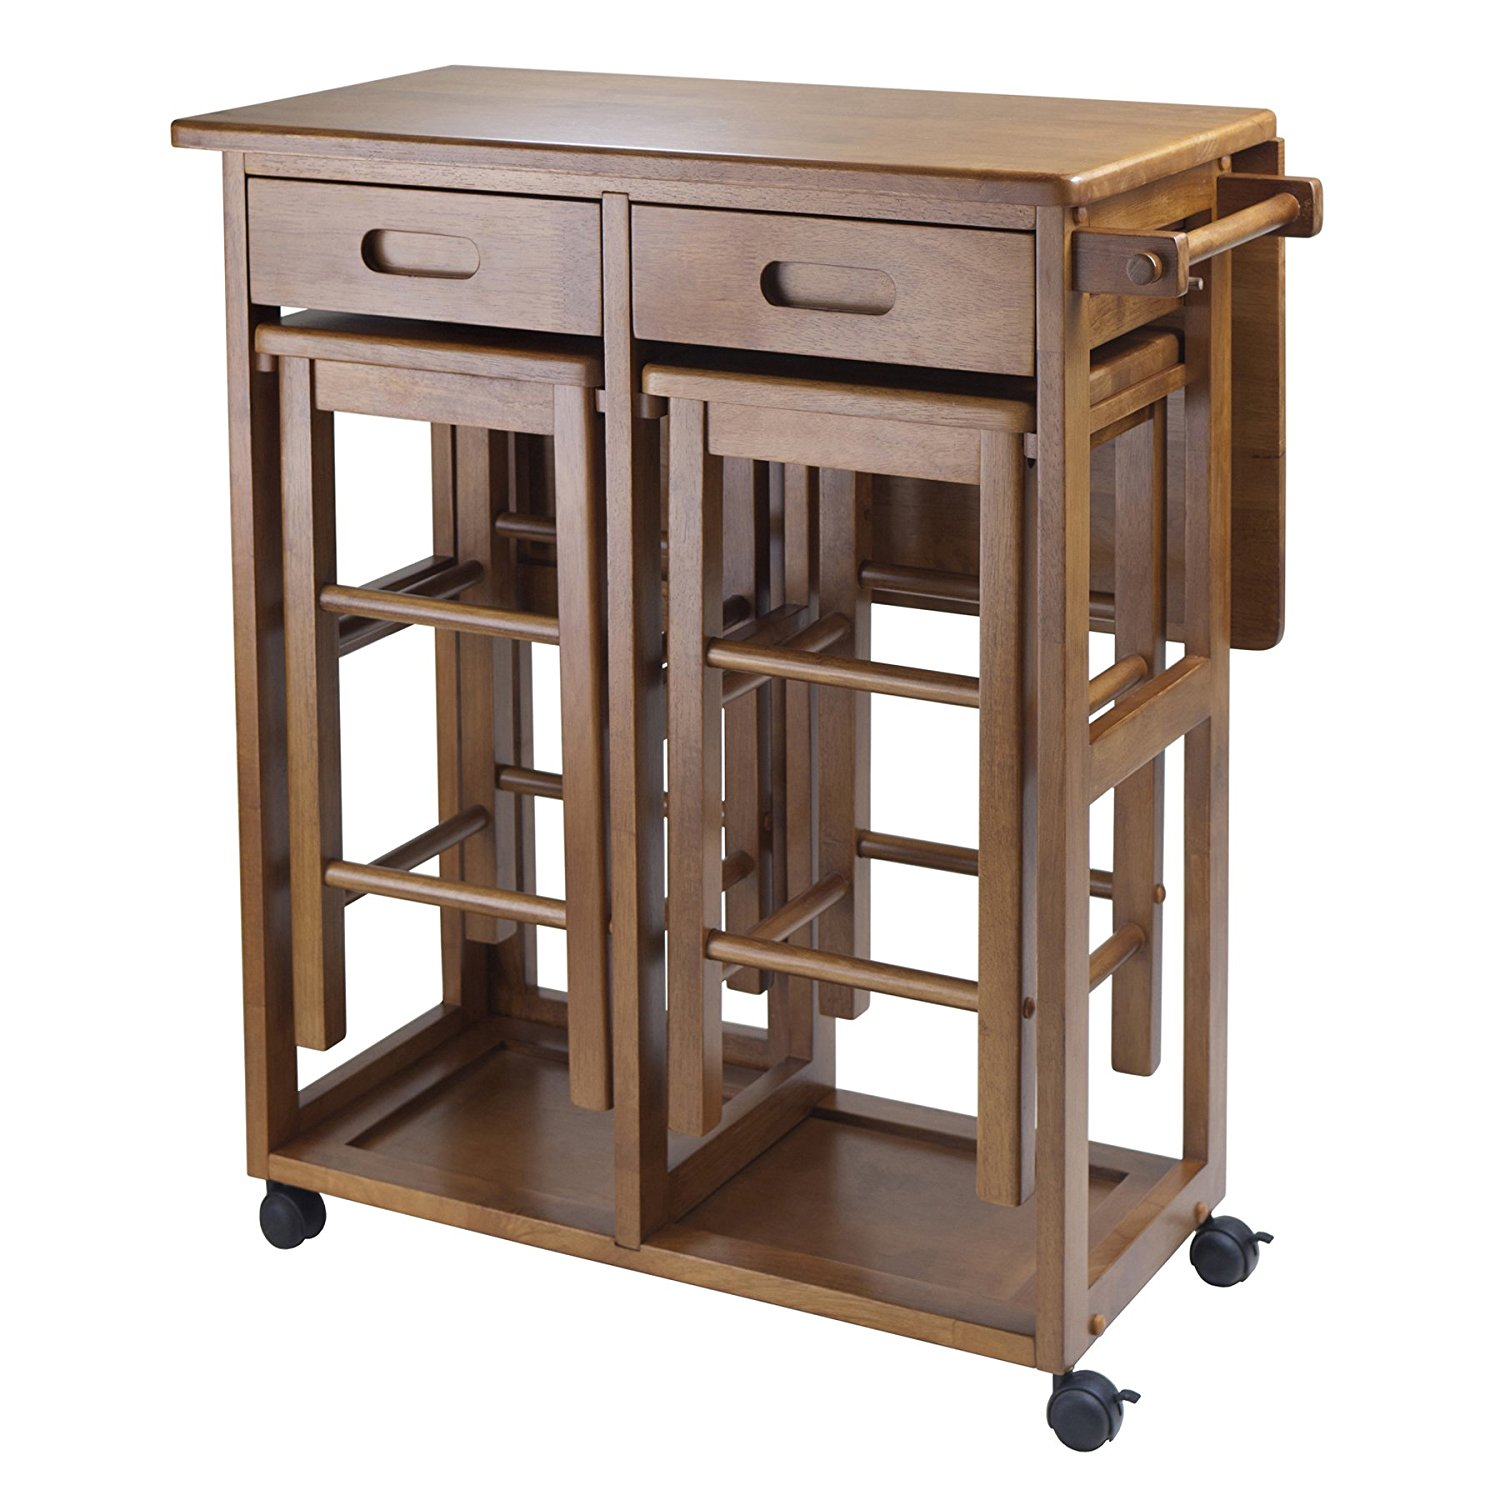 Kitchen Island Table Online India: 2018 Top 10 Best Mobile Kitchen Carts, Centers, Islands & Utility Tables